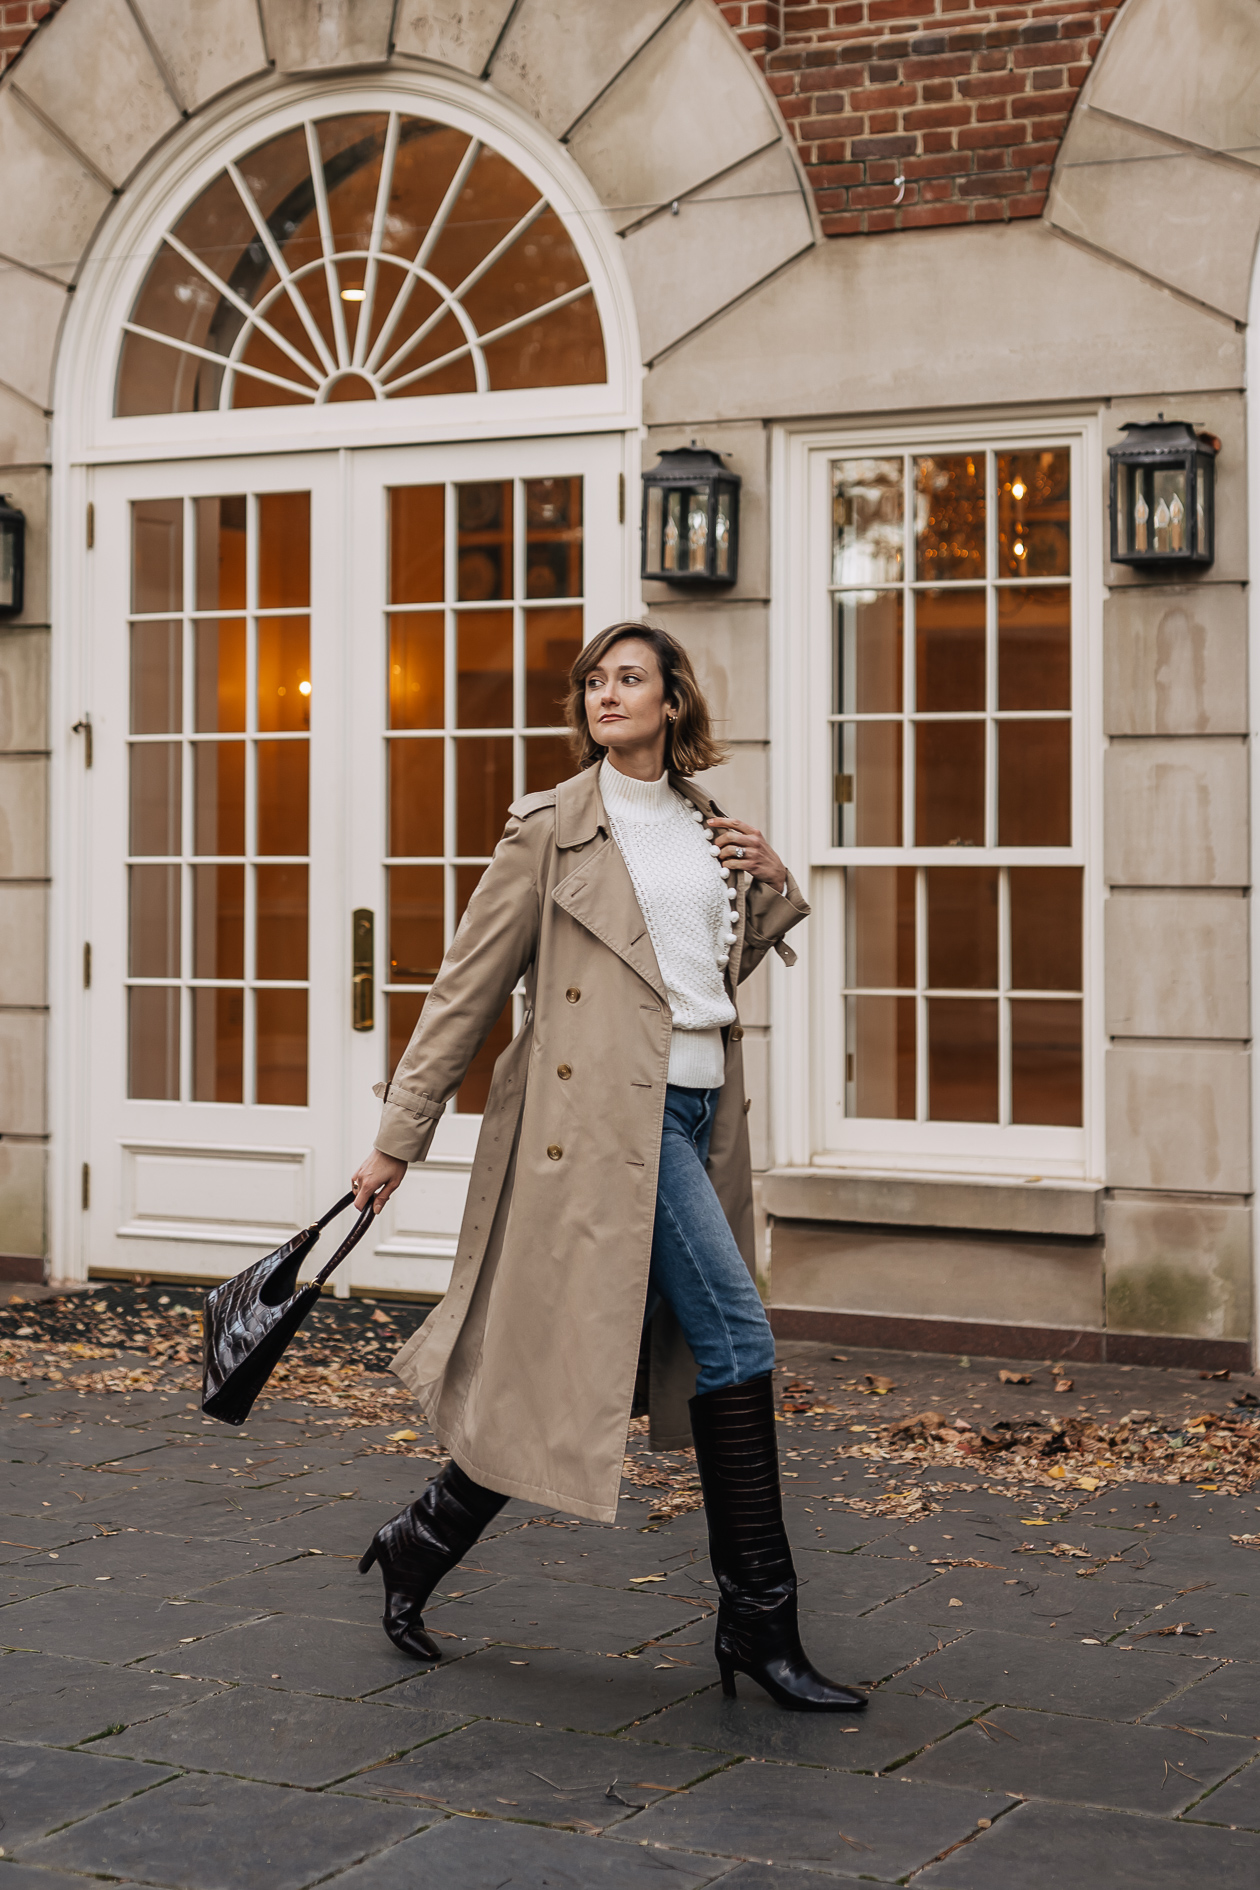 classic trench coat & knee high boots outfit